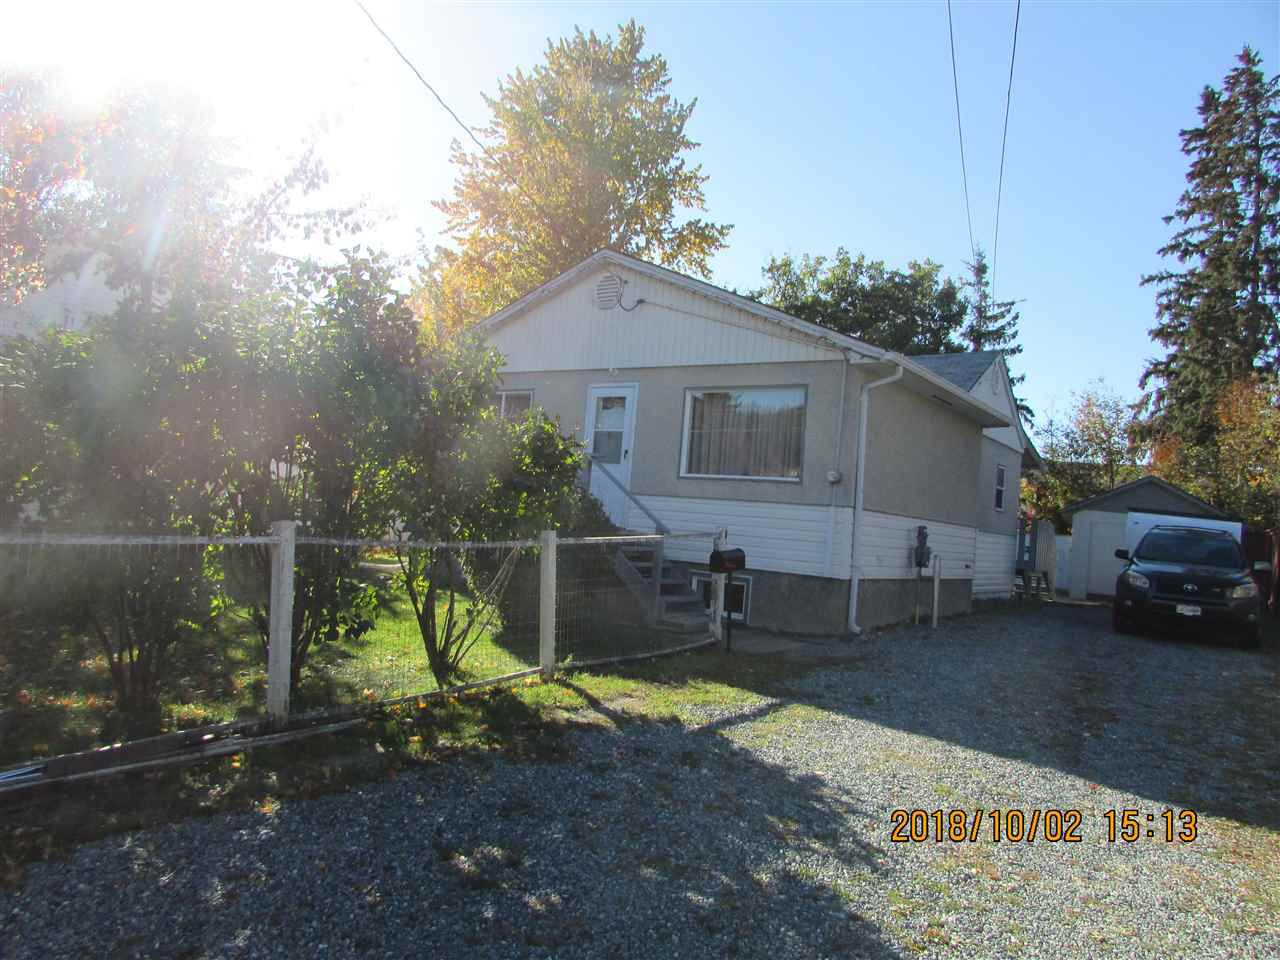 Main Photo: 2641 KASLO Street in Prince George: South Fort George House for sale (PG City Central (Zone 72))  : MLS®# R2312273